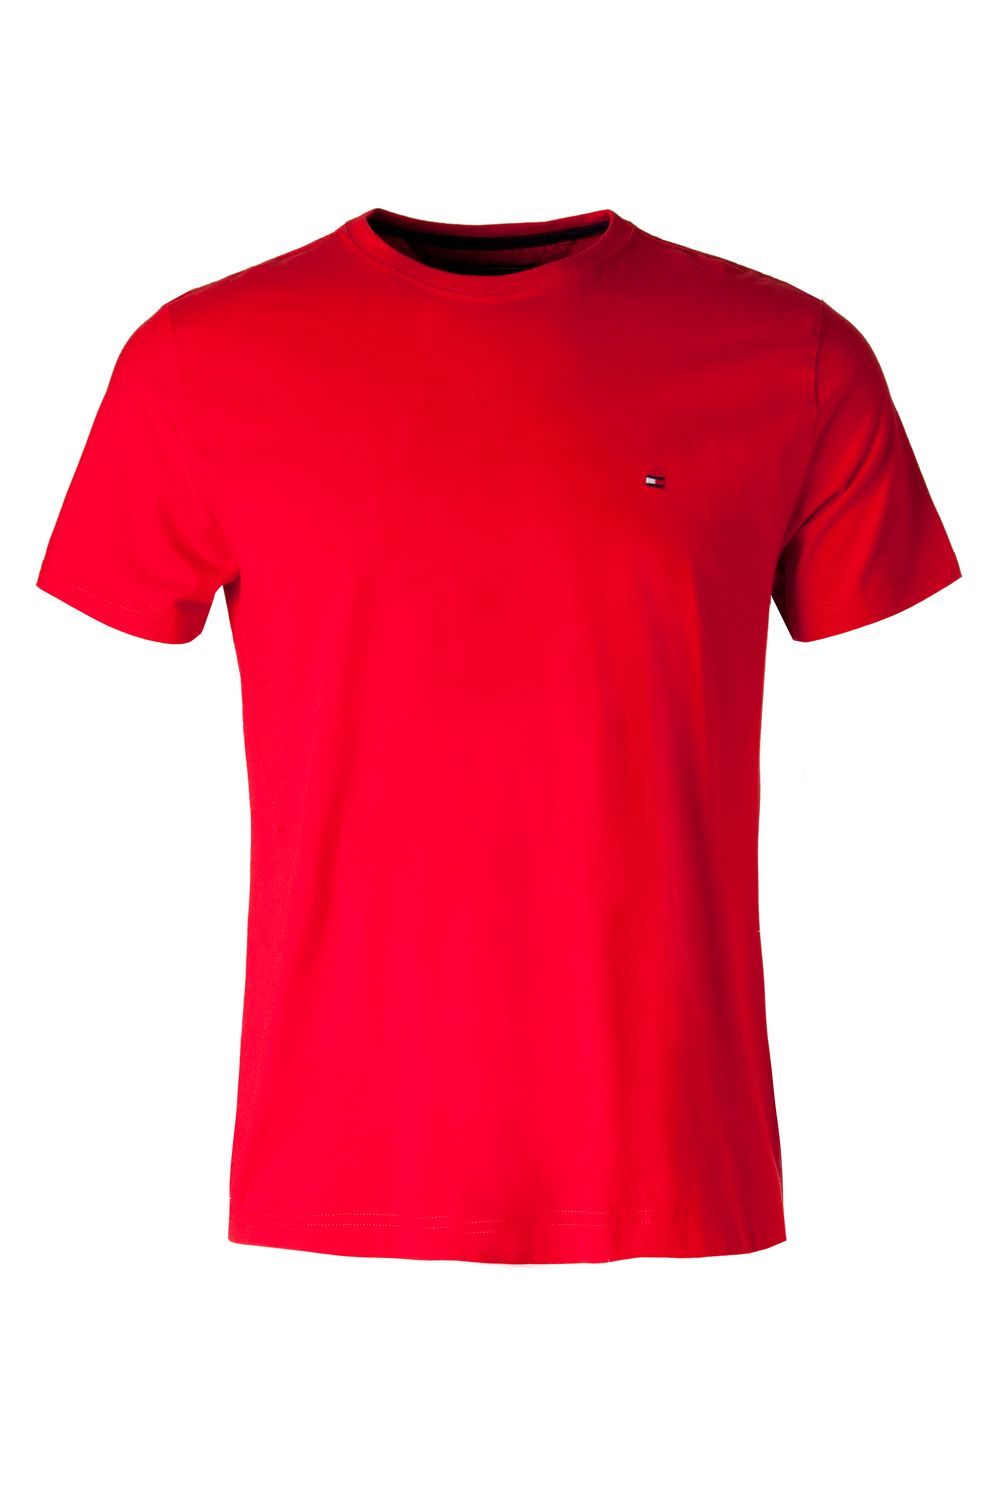 tommy hilfiger red flag crew neck short sleeve t shirt short sleeve t. Black Bedroom Furniture Sets. Home Design Ideas